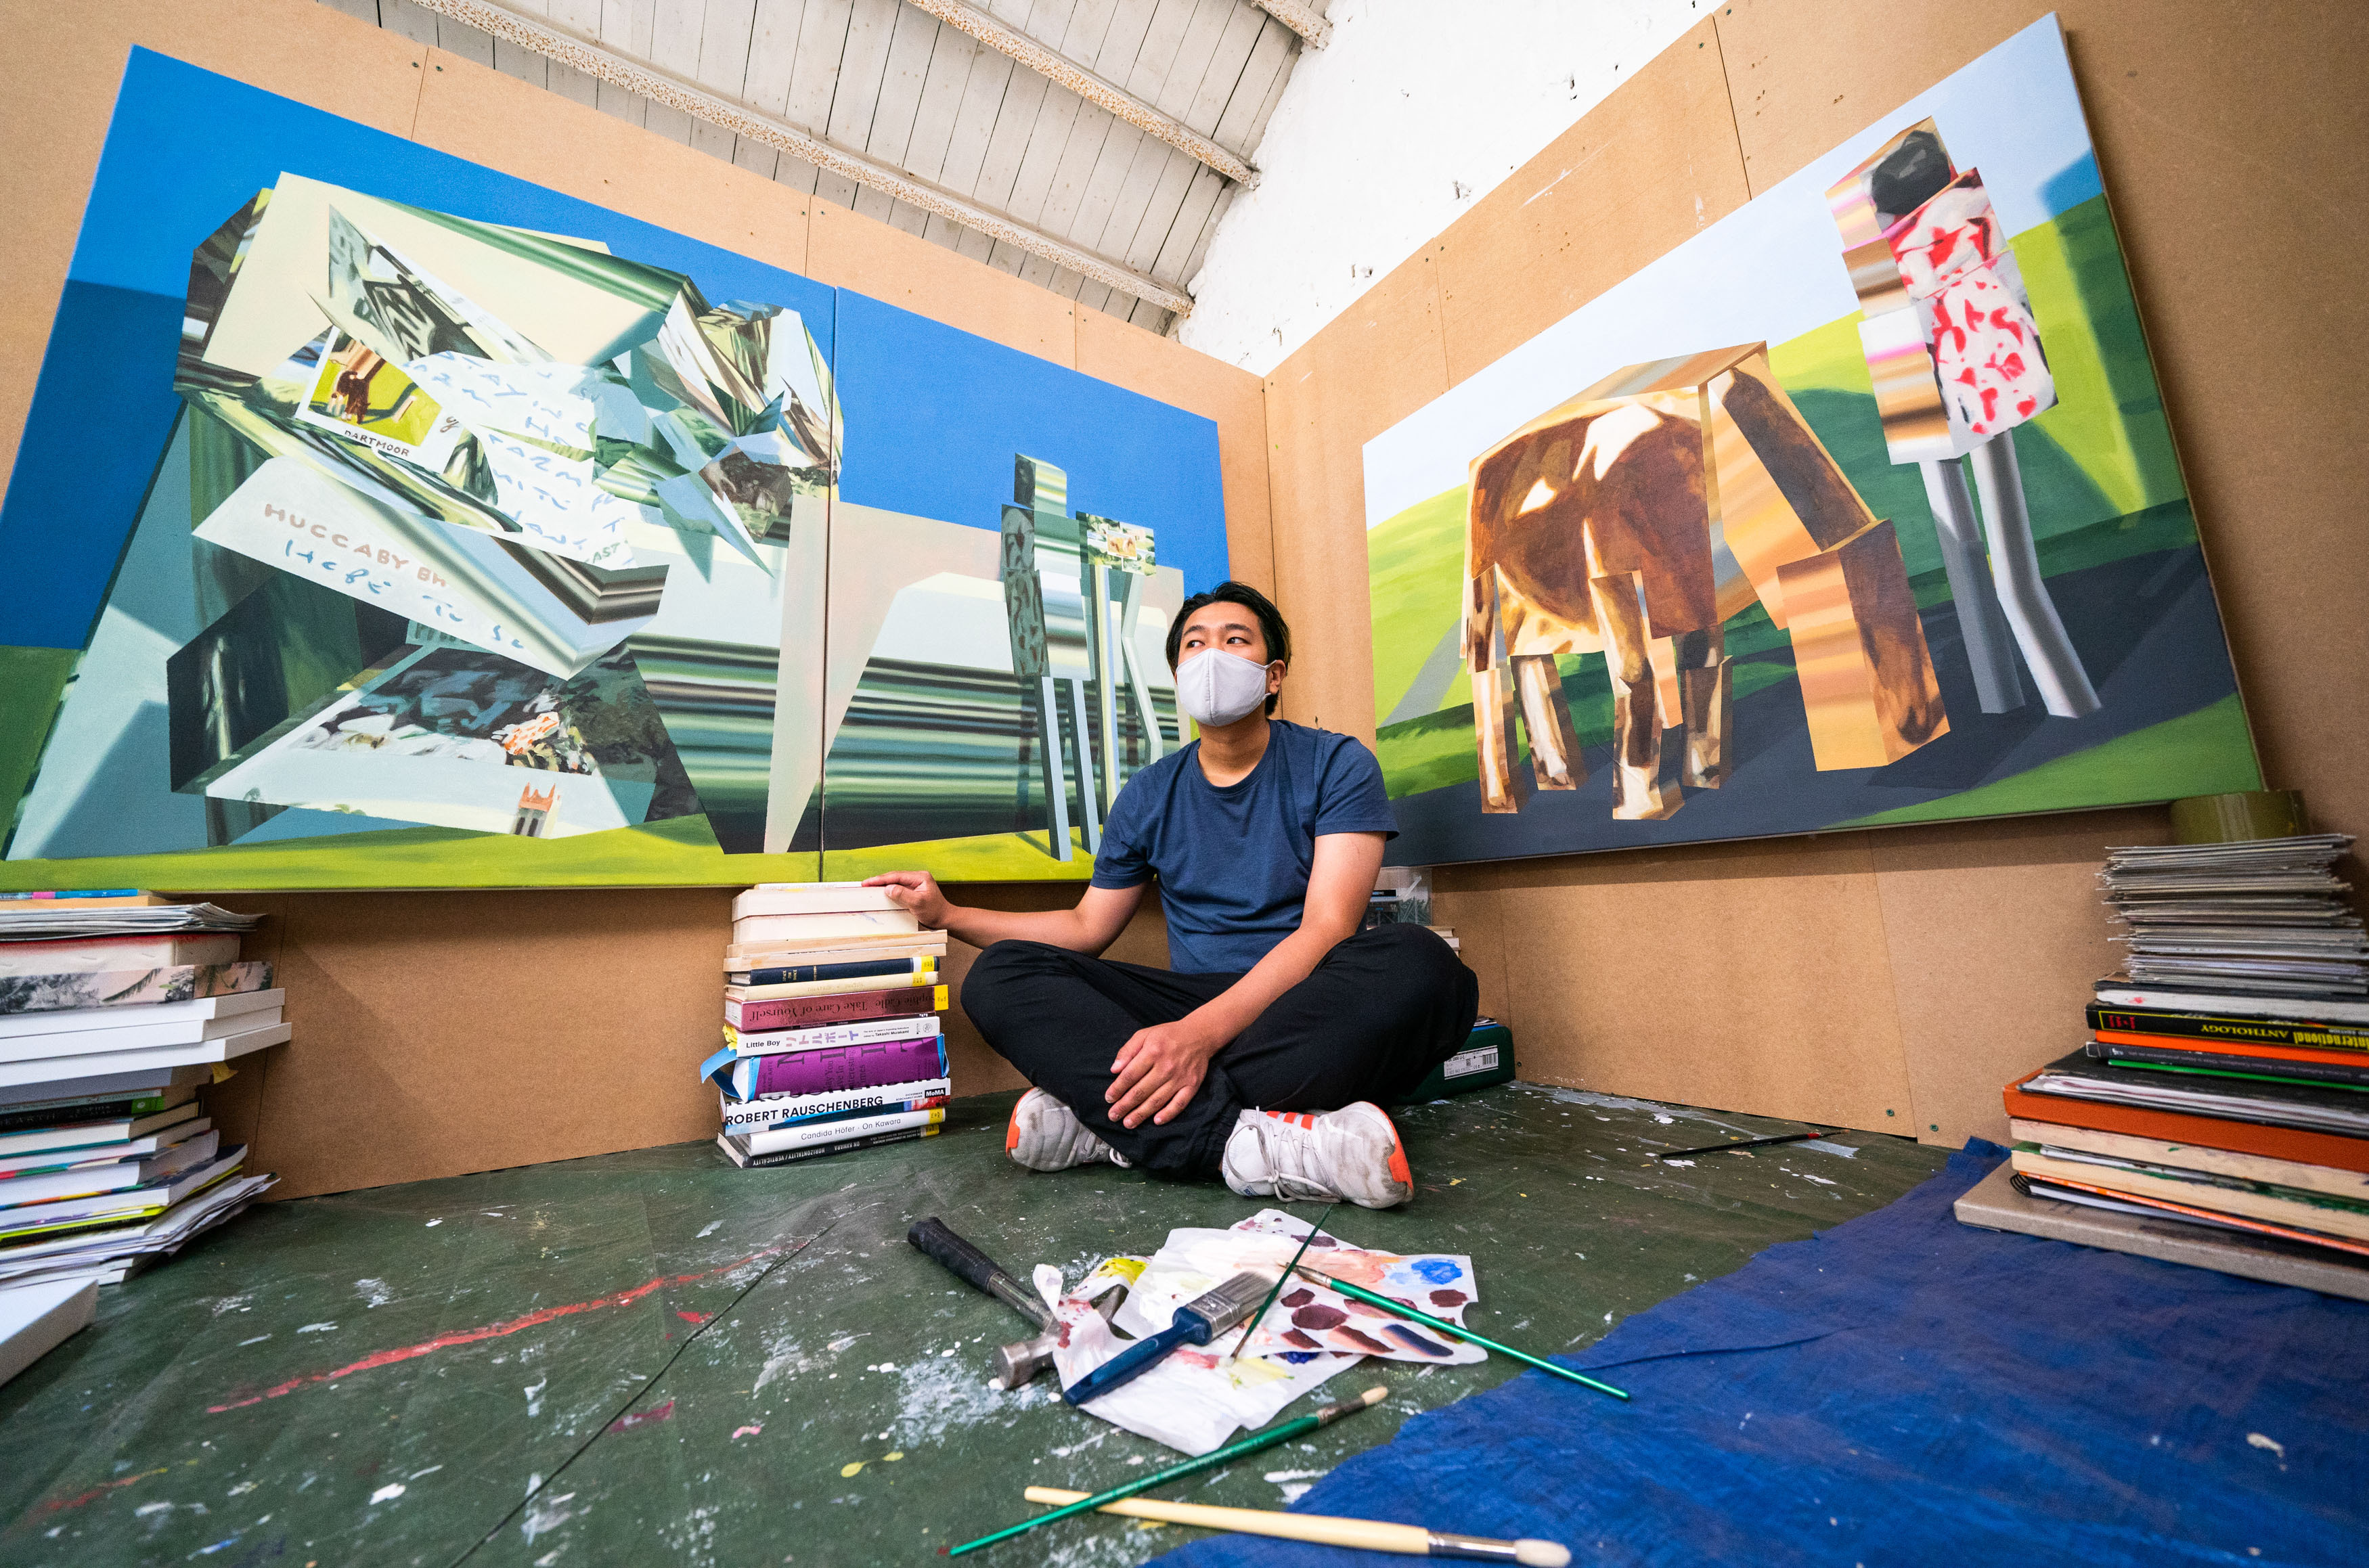 <p>Student Masaki Ishikawa alongside his paintings in his �Home Studio� installation which is on display at The Glue Factory in Glasgow, which forms part of the Glasgow School of Art exhibition �Hot Wheels� featuring works by this year�s MFA (Master of Fine Arts) graduates. Picture date: Thursday June 24, 2021.</p>